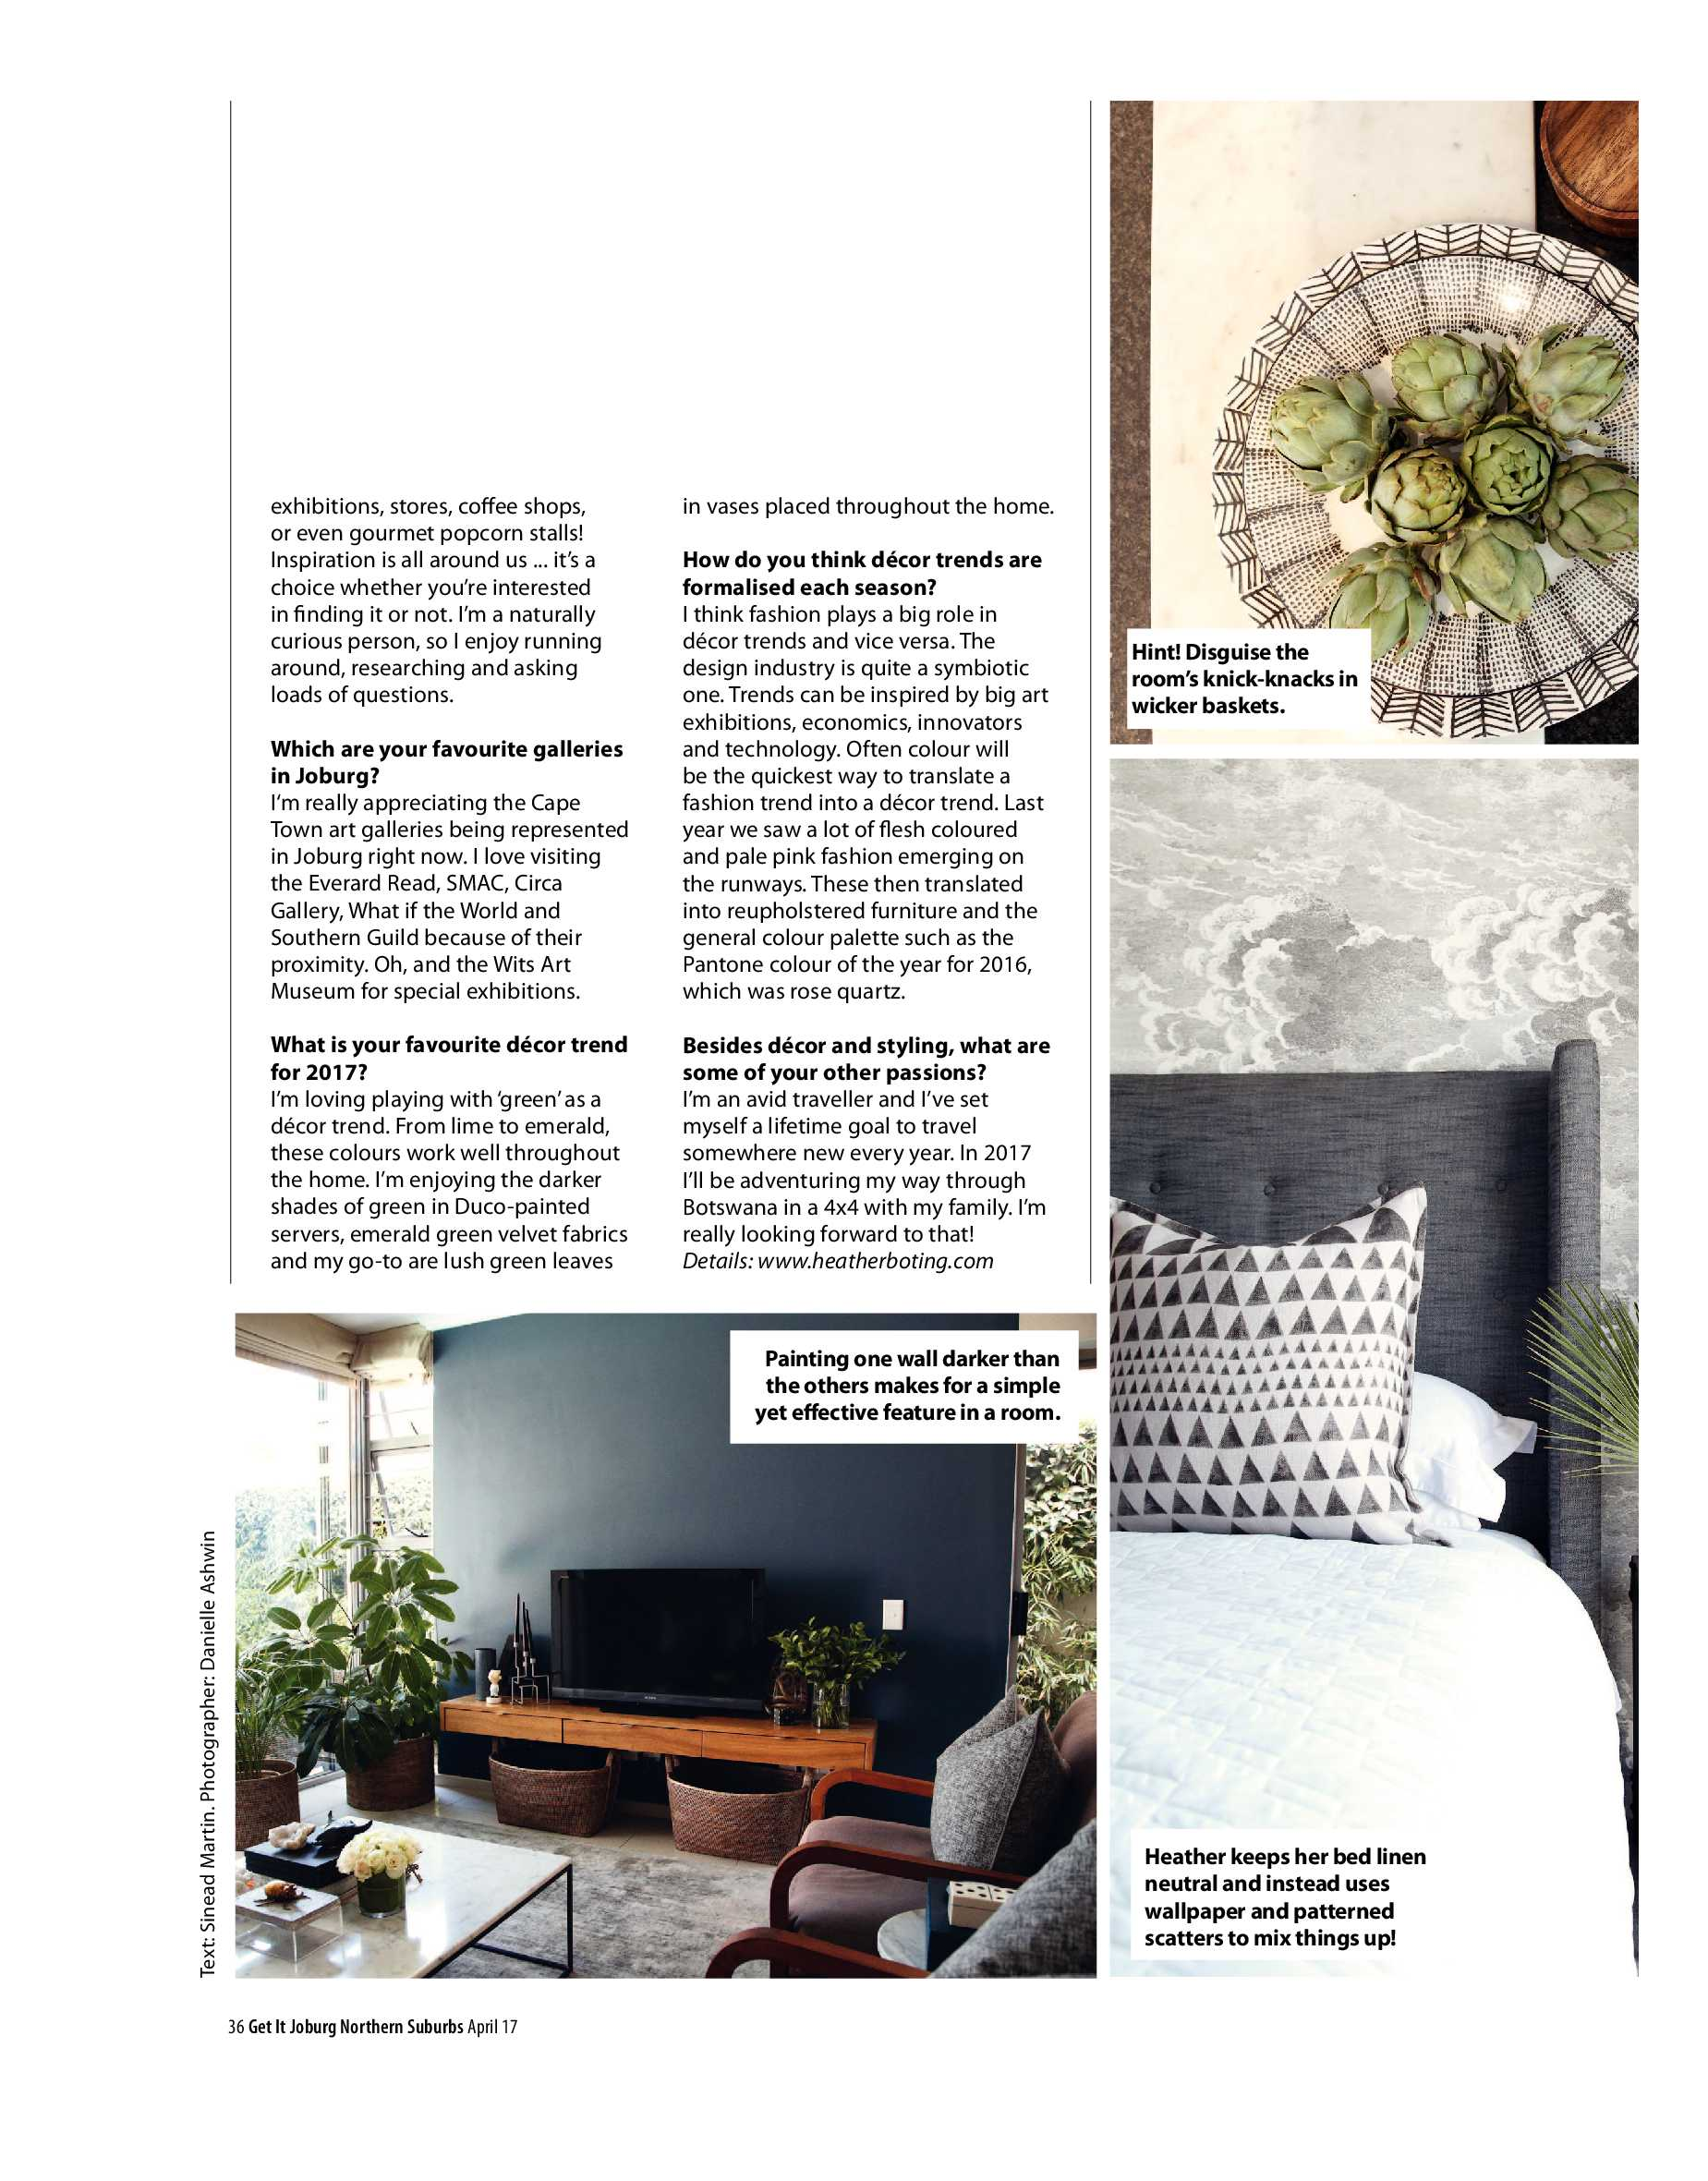 get-joburg-north-april-2017-epapers-page-36